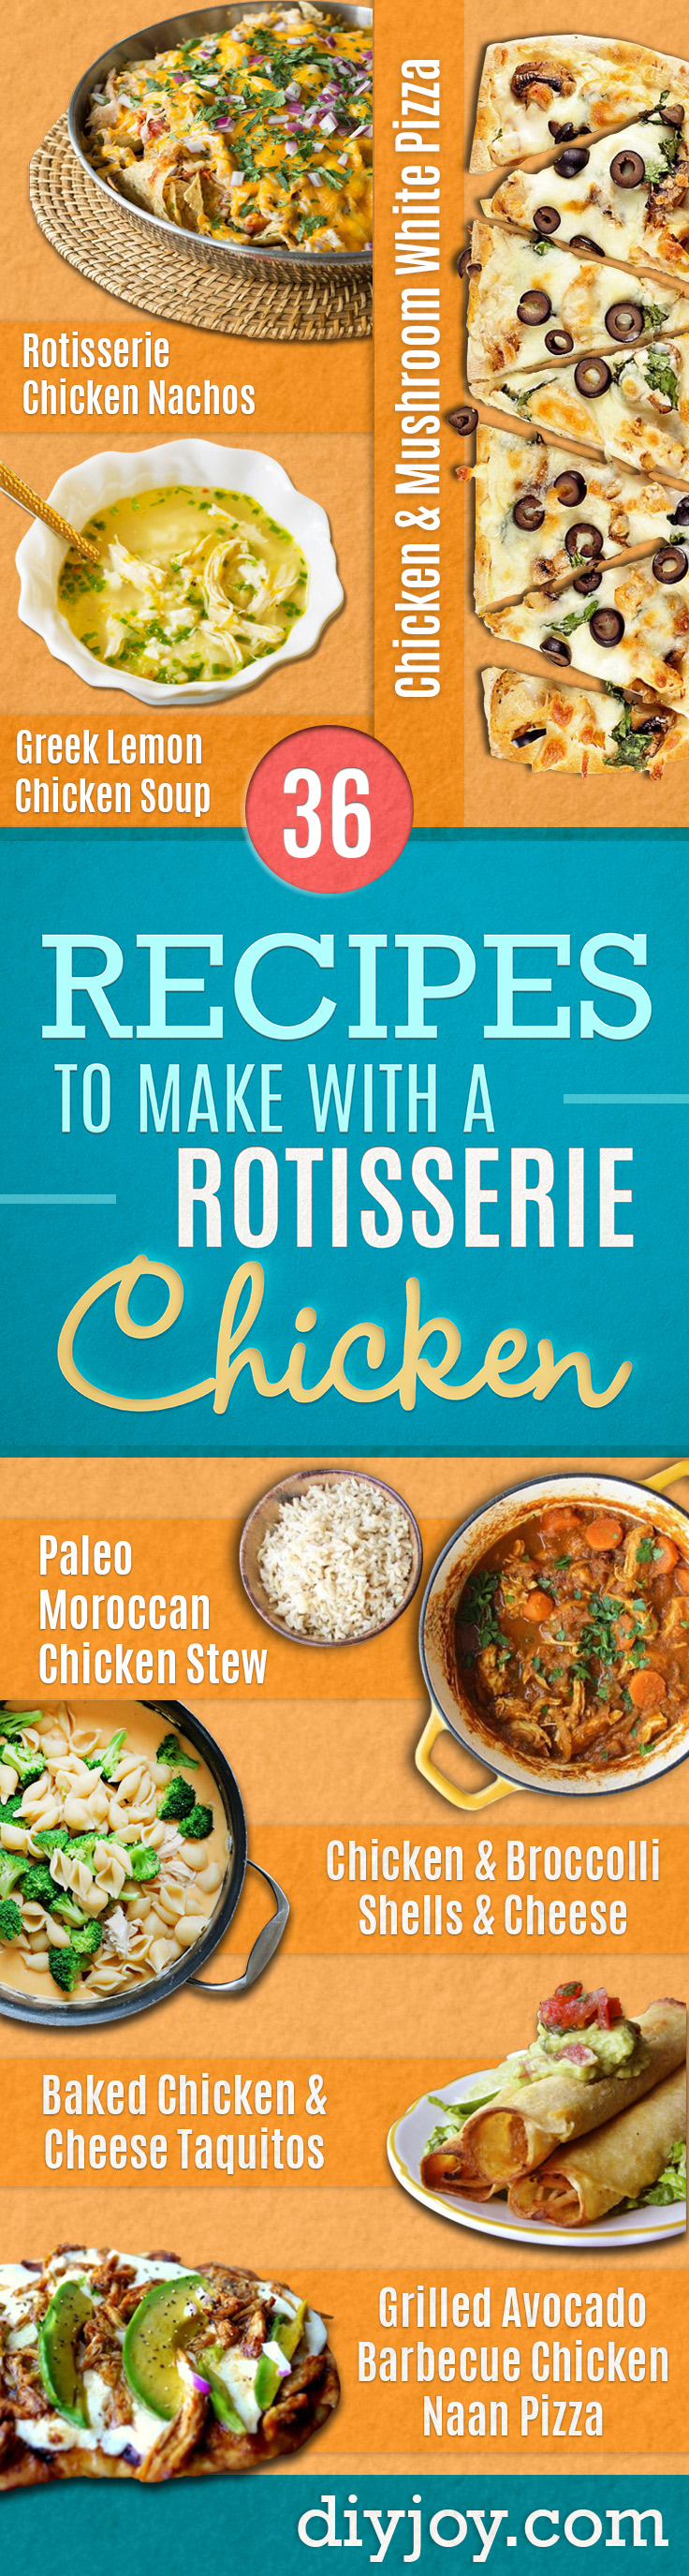 Easy Recipes For Rotisserie Chicken - Healthy Recipe Ideas for Leftovers - Comfort Foods With Chicken - Low Carb and Gluten Free, Crock Pot Meals #easyrecipes #recipes #chicken